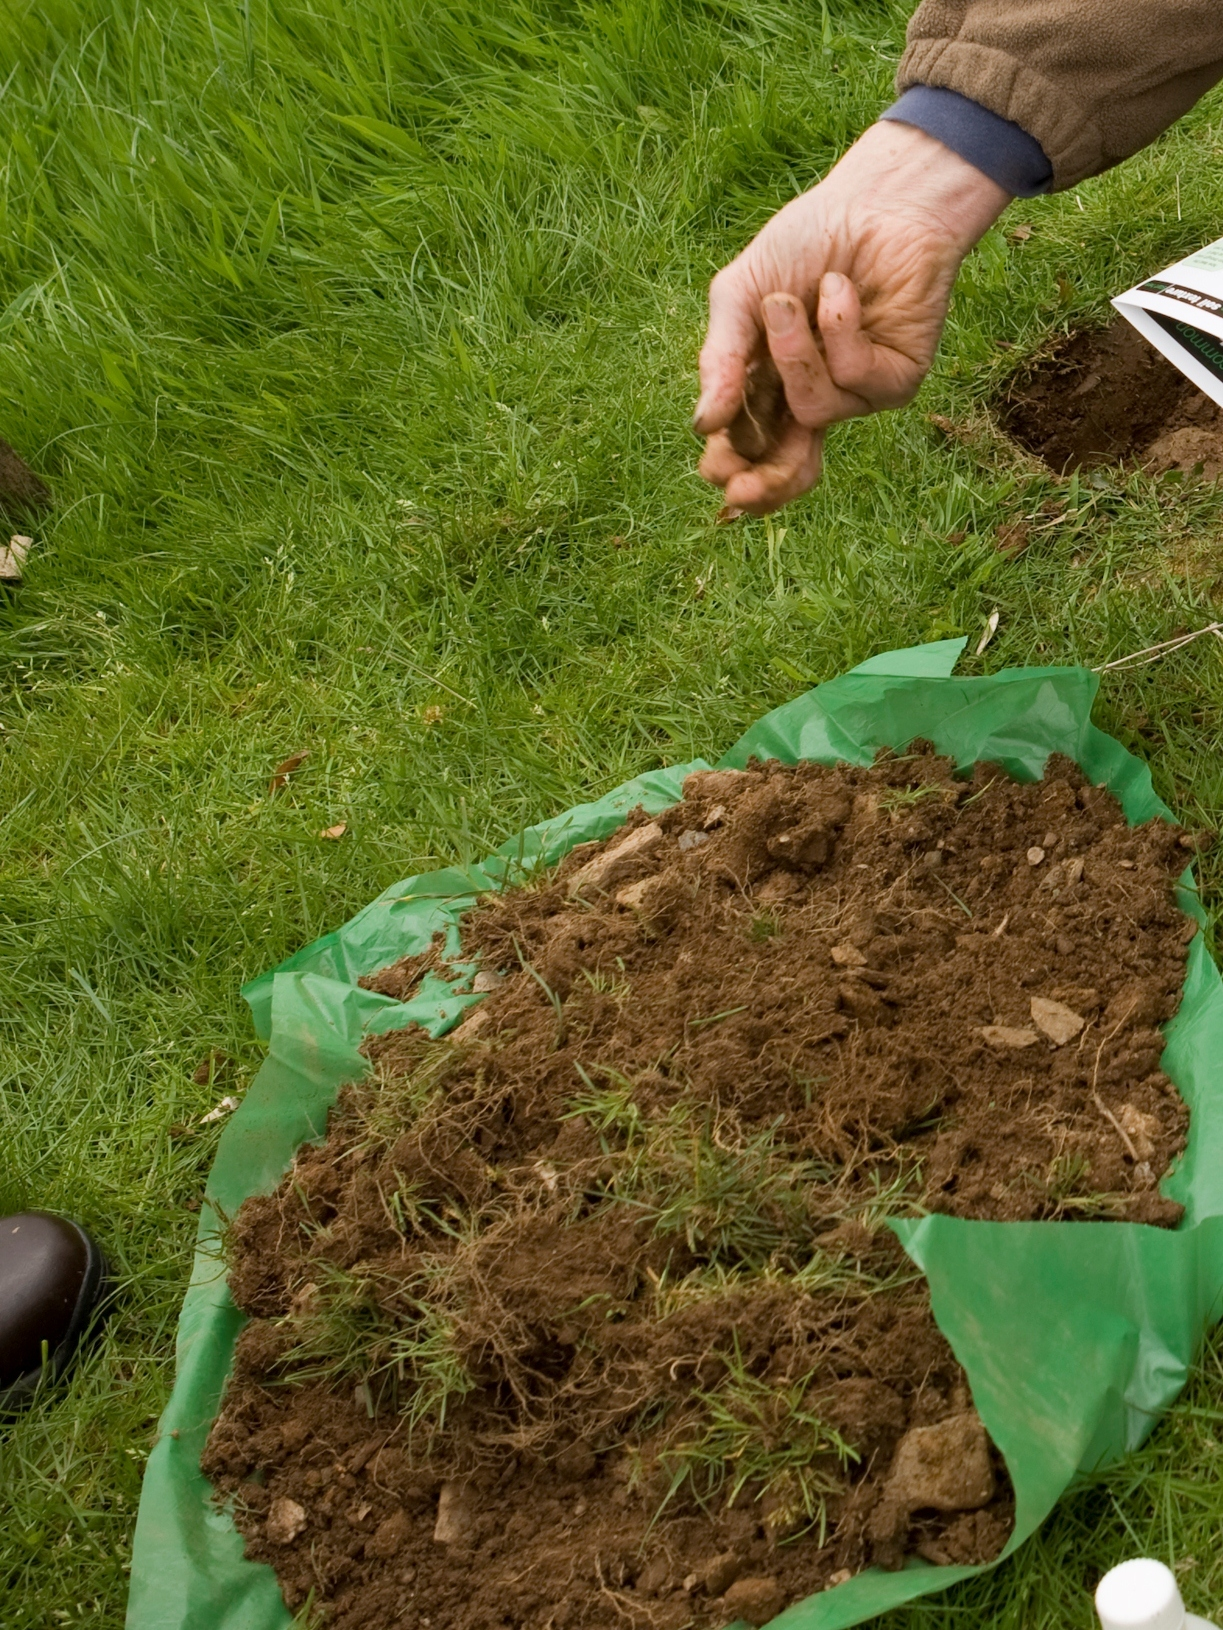 Freshly dug soil, on a piece of green polythene, with a hand crumbling it